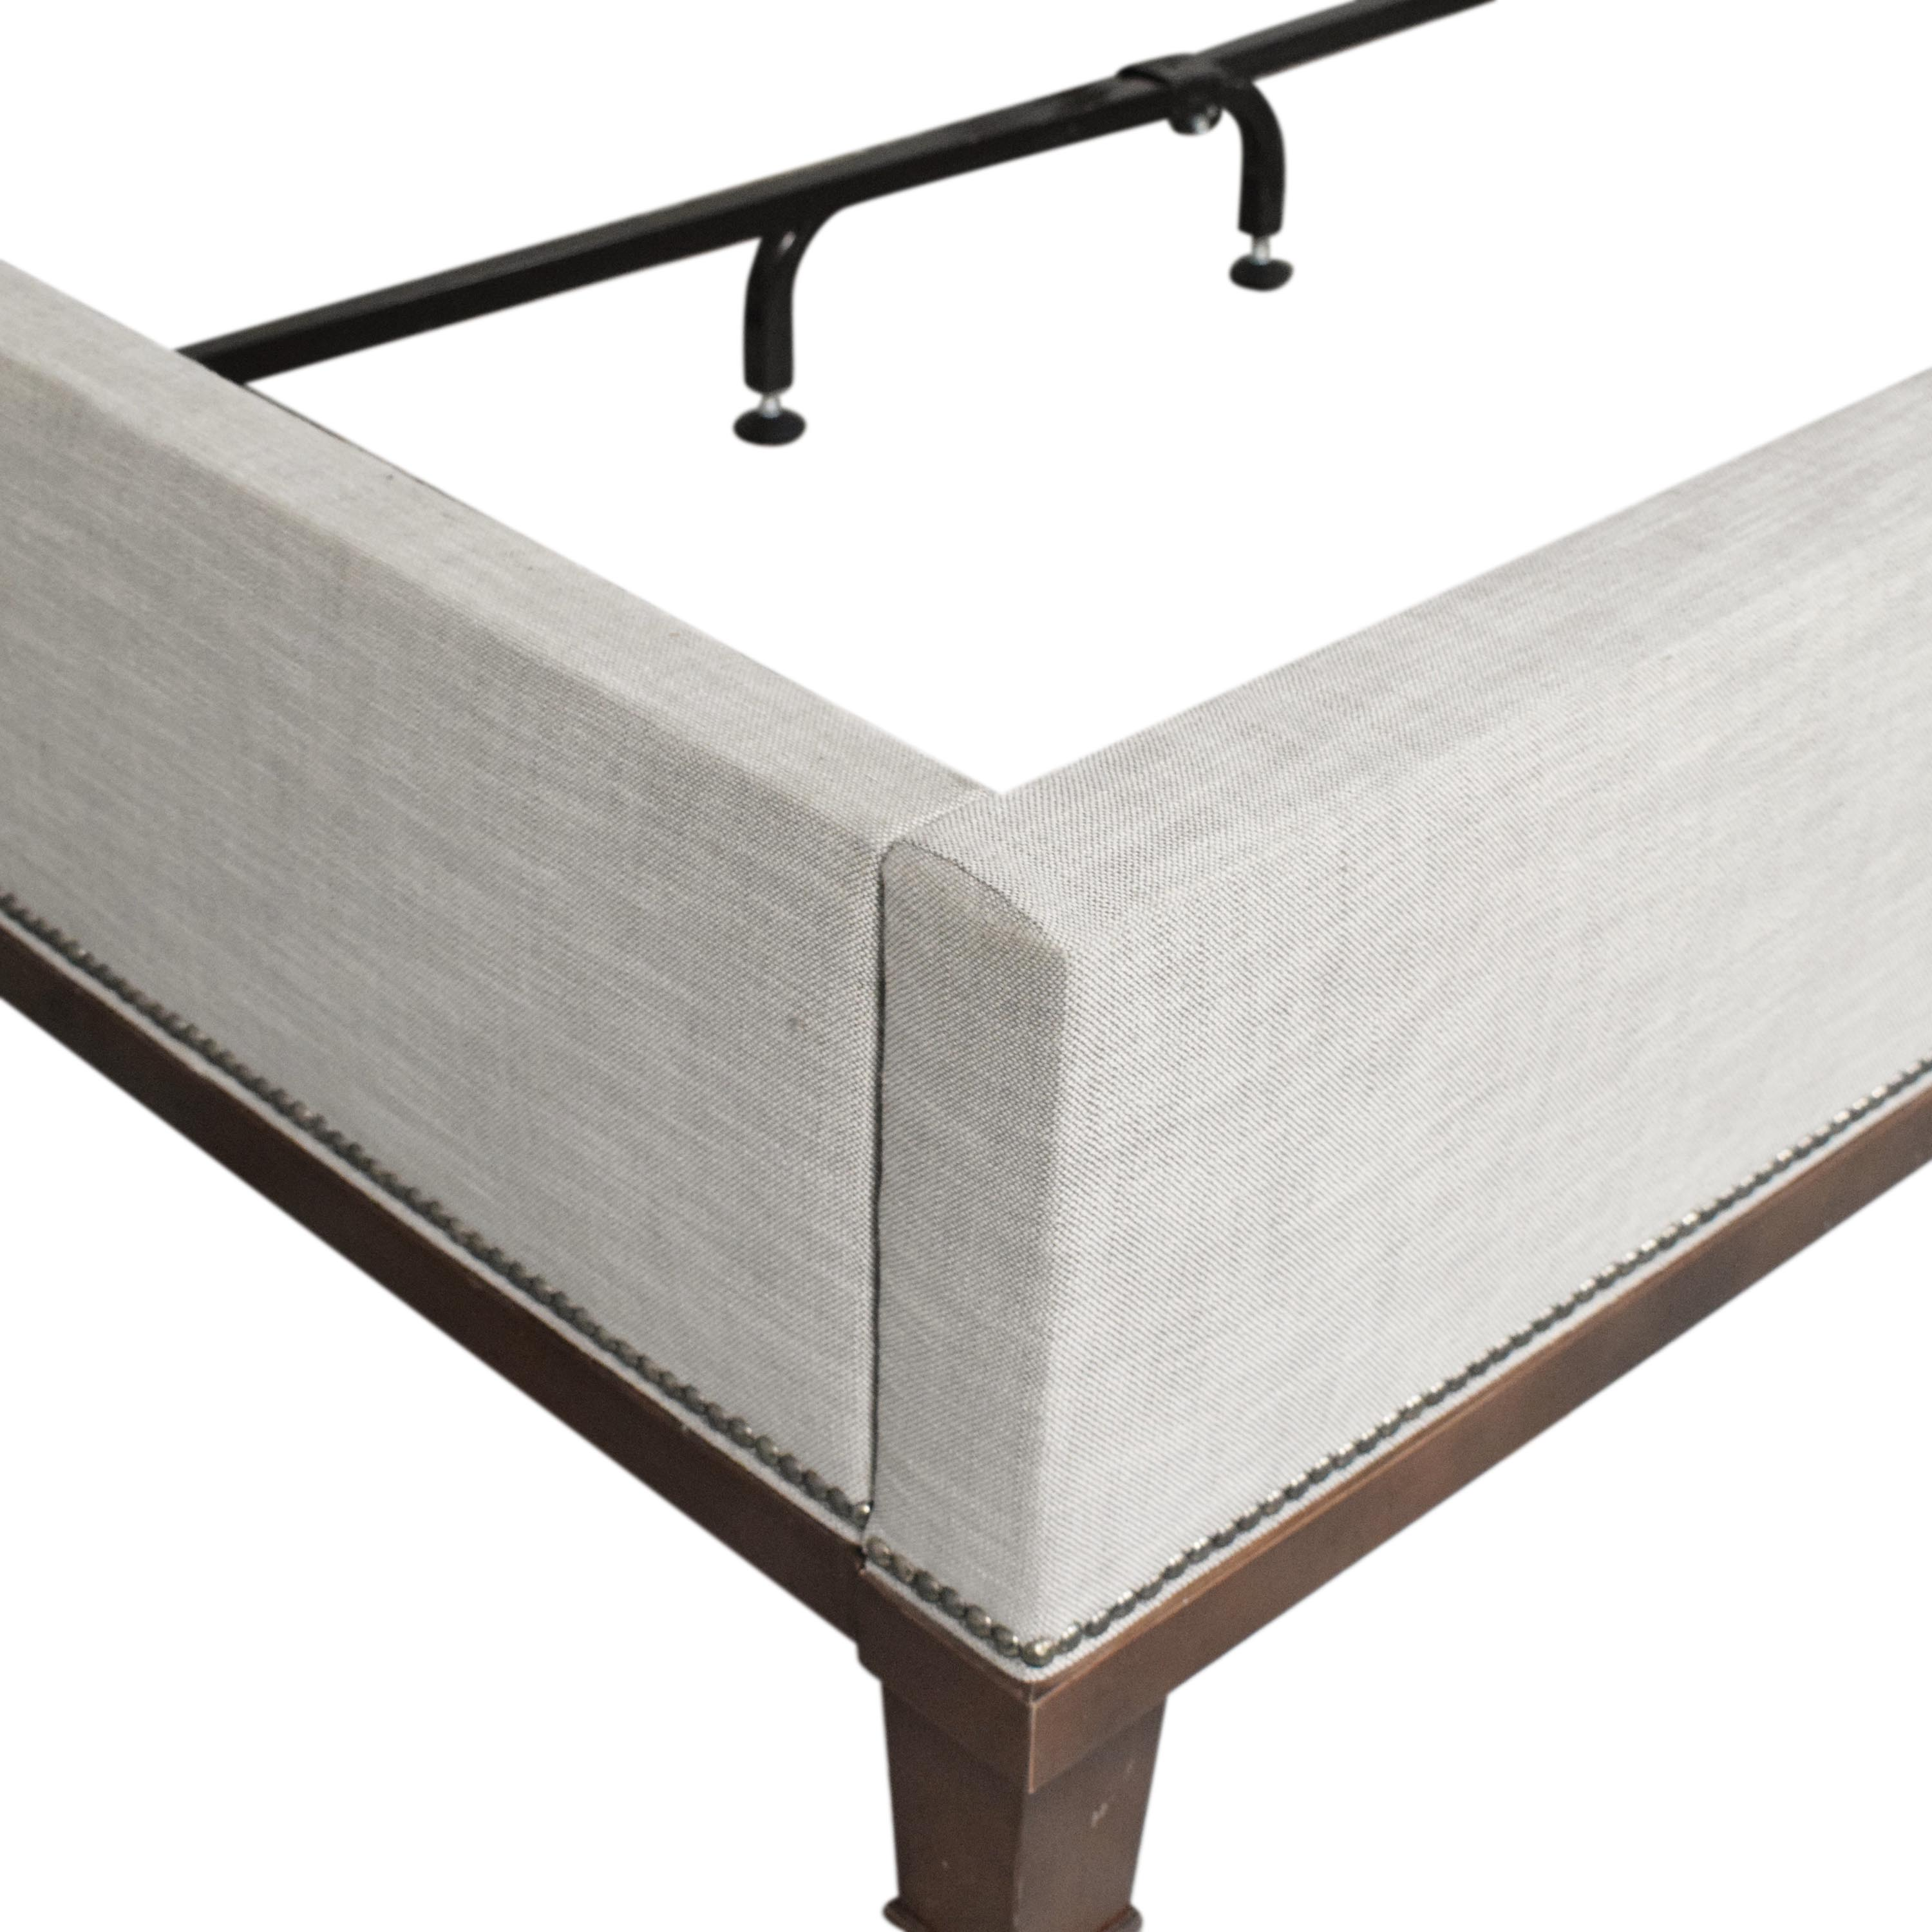 Vanguard Furniture Vanguard Tufted Barrett King Bed by Michael Weiss coupon